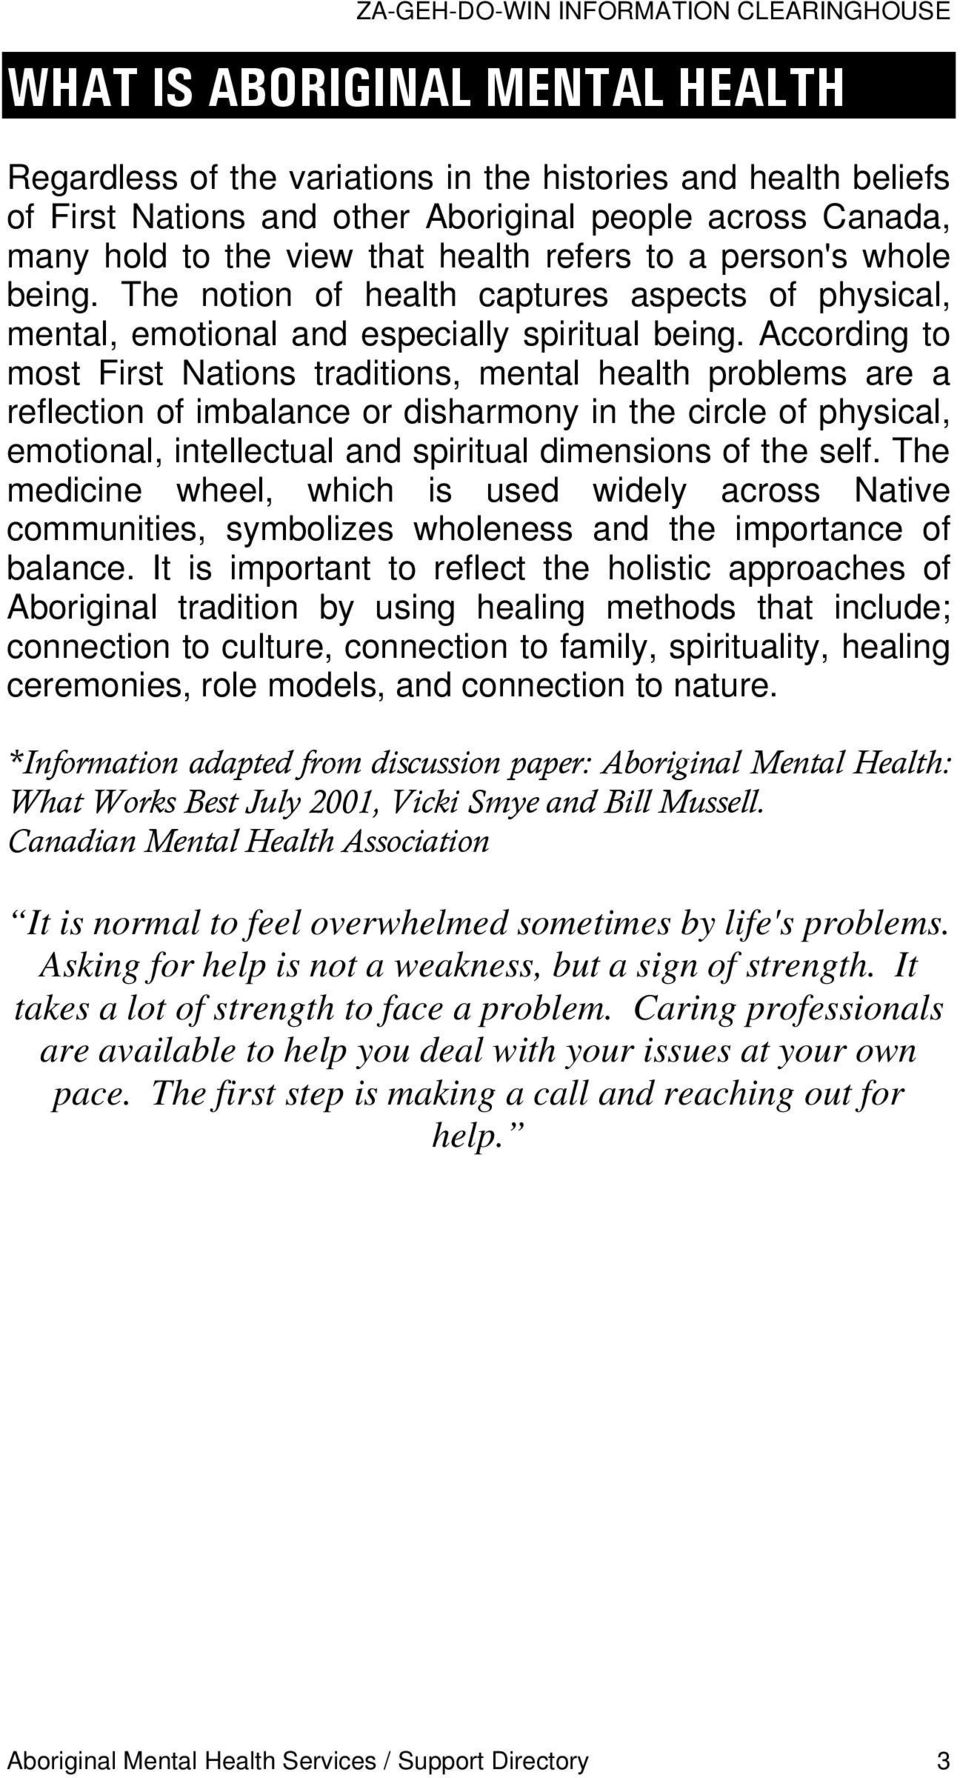 According to most First Nations traditions, mental health problems are a reflection of imbalance or disharmony in the circle of physical, emotional, intellectual and spiritual dimensions of the self.